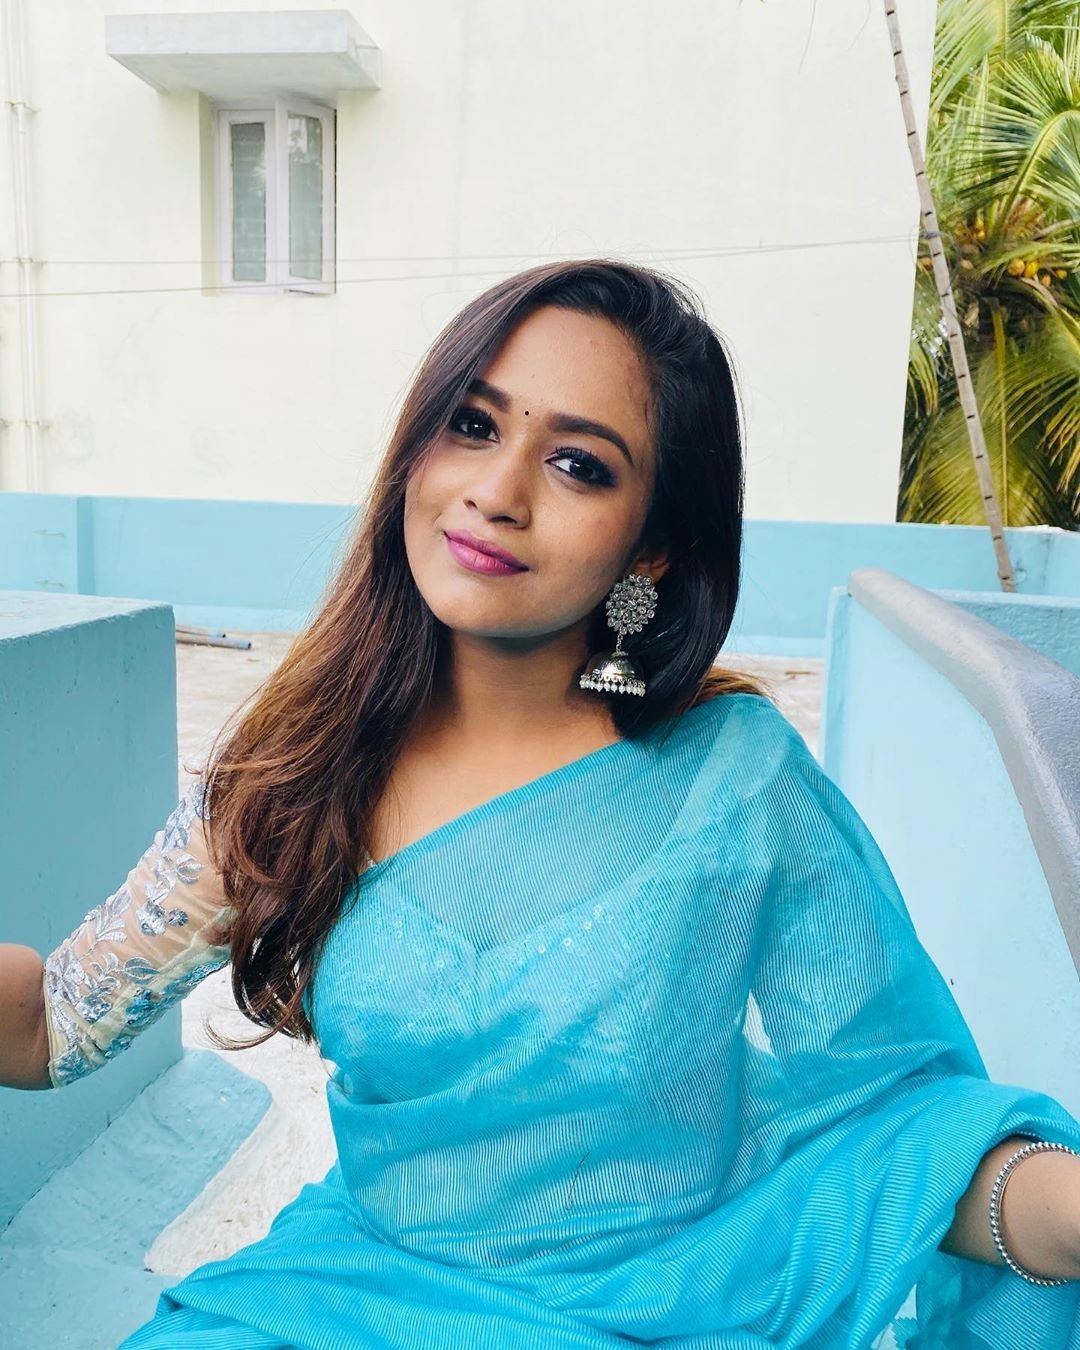 Kaavya Arivumani Profile| Contact Details (Phone number, Instagram, Twitter, YouTube, Email)